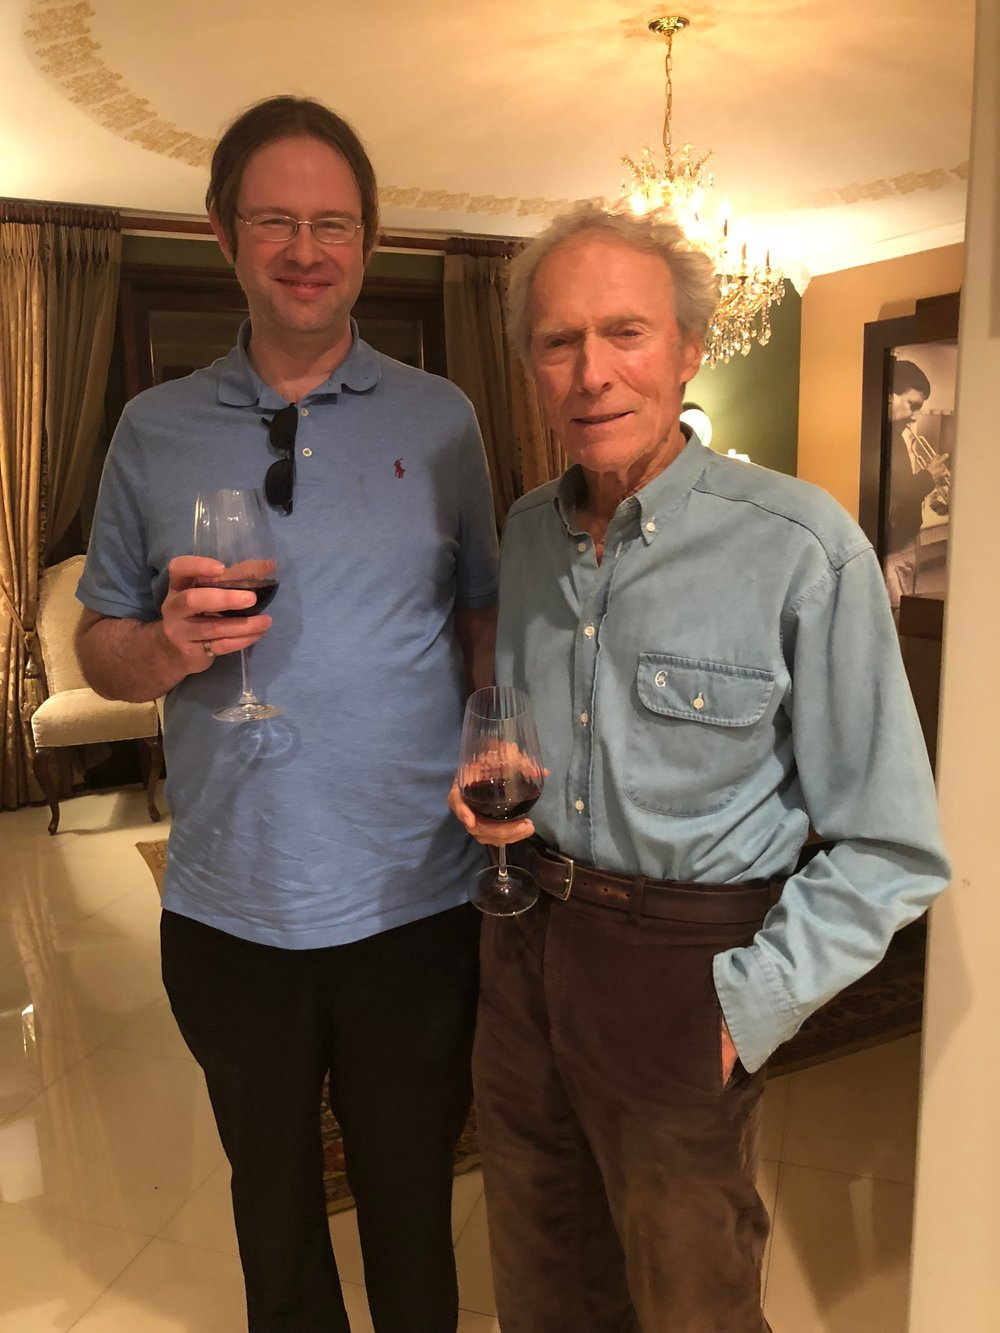 Kaska with Clint Eastwood